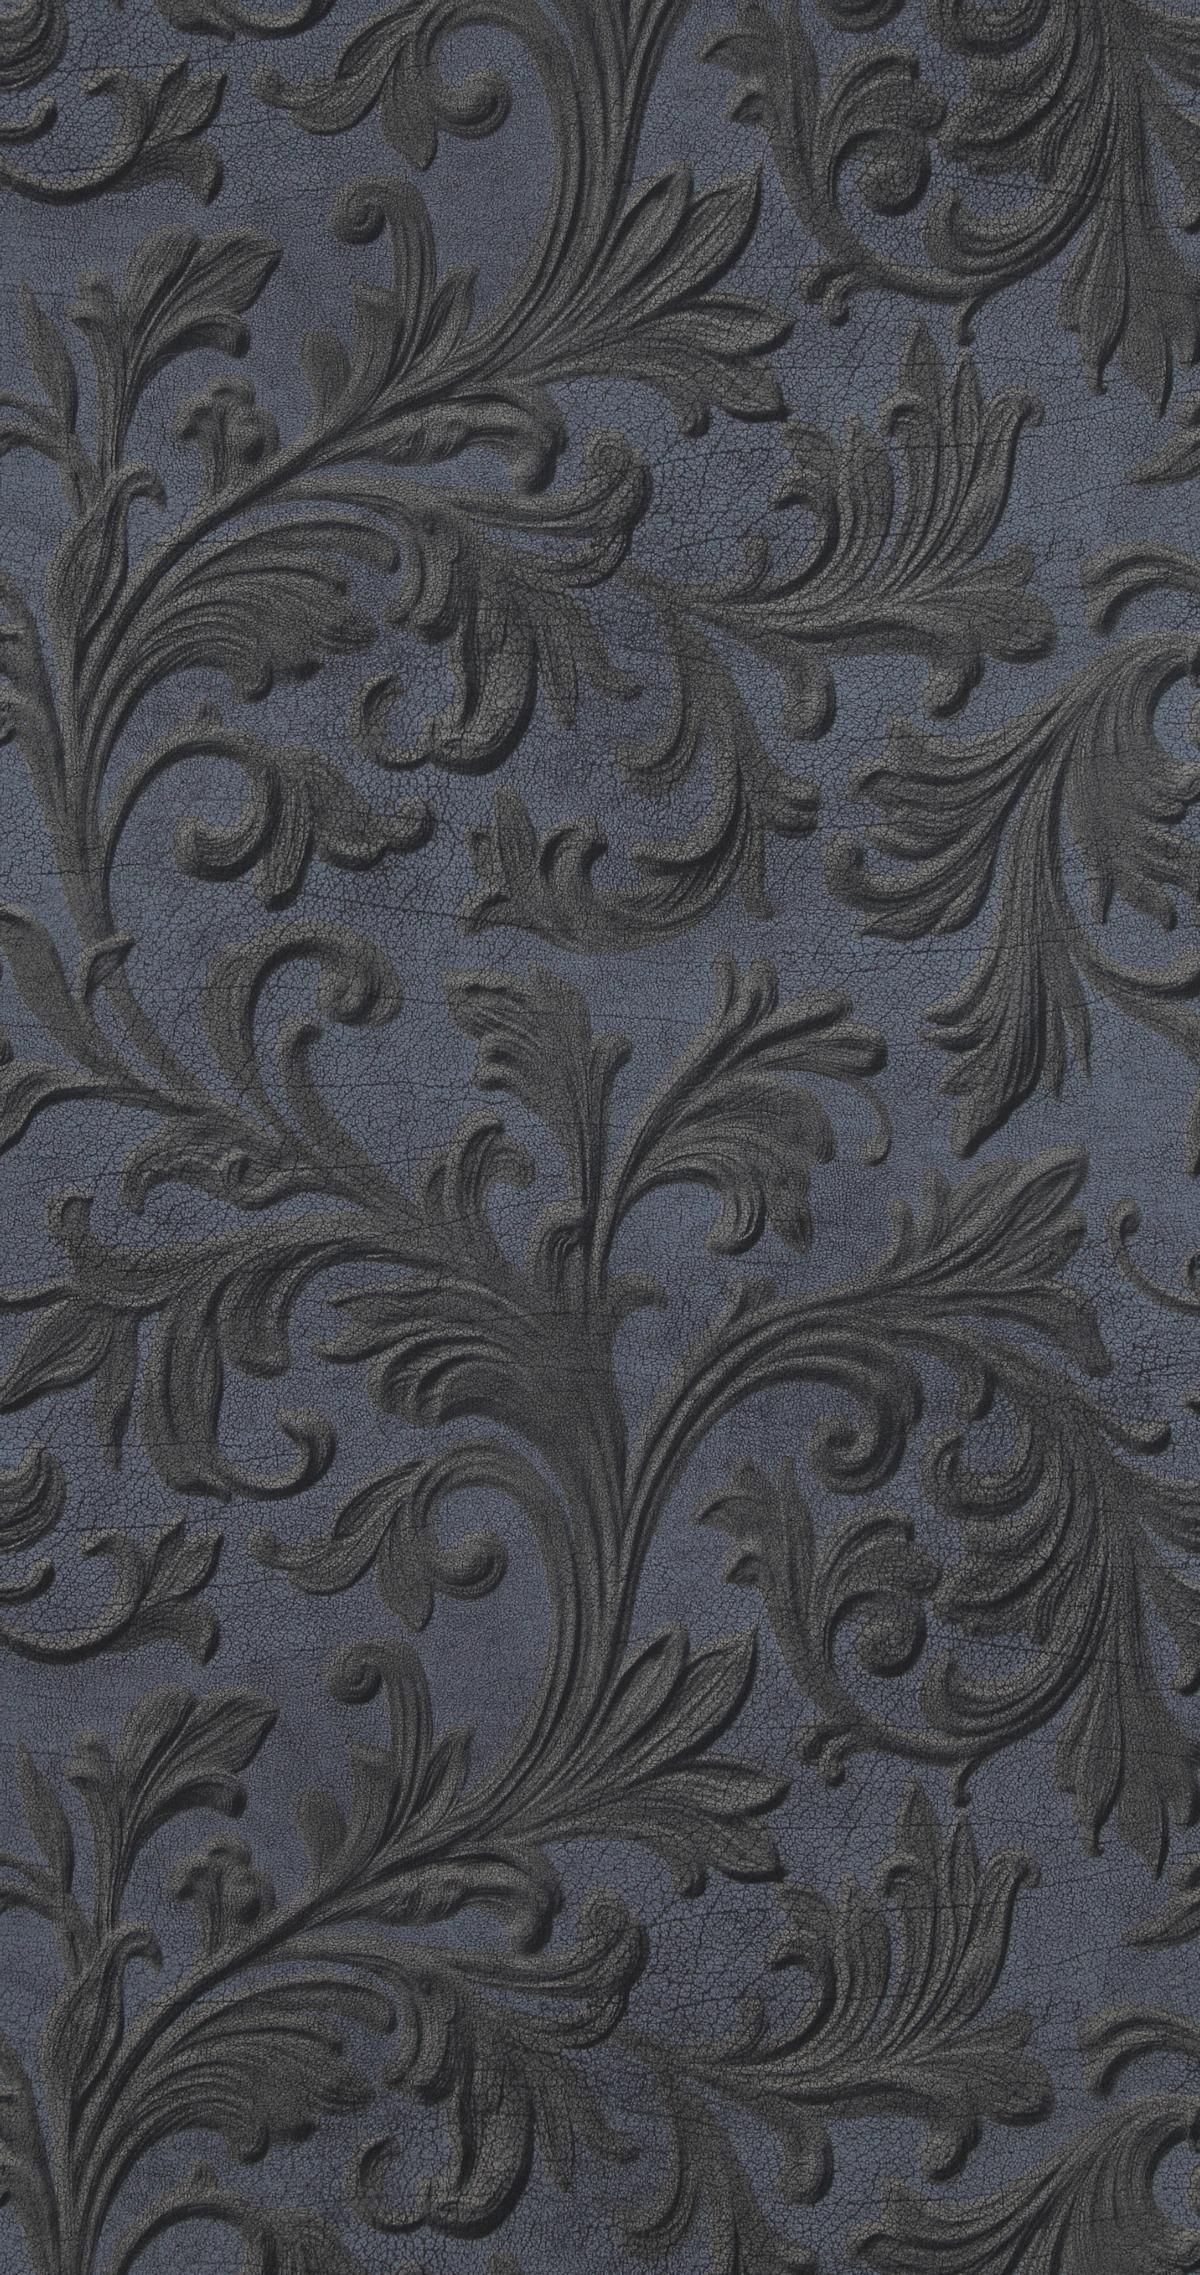 Love This Dark Royal Blue Neoclassical Demask Patterned Wallpaper Its Rococco Baroque Victorian